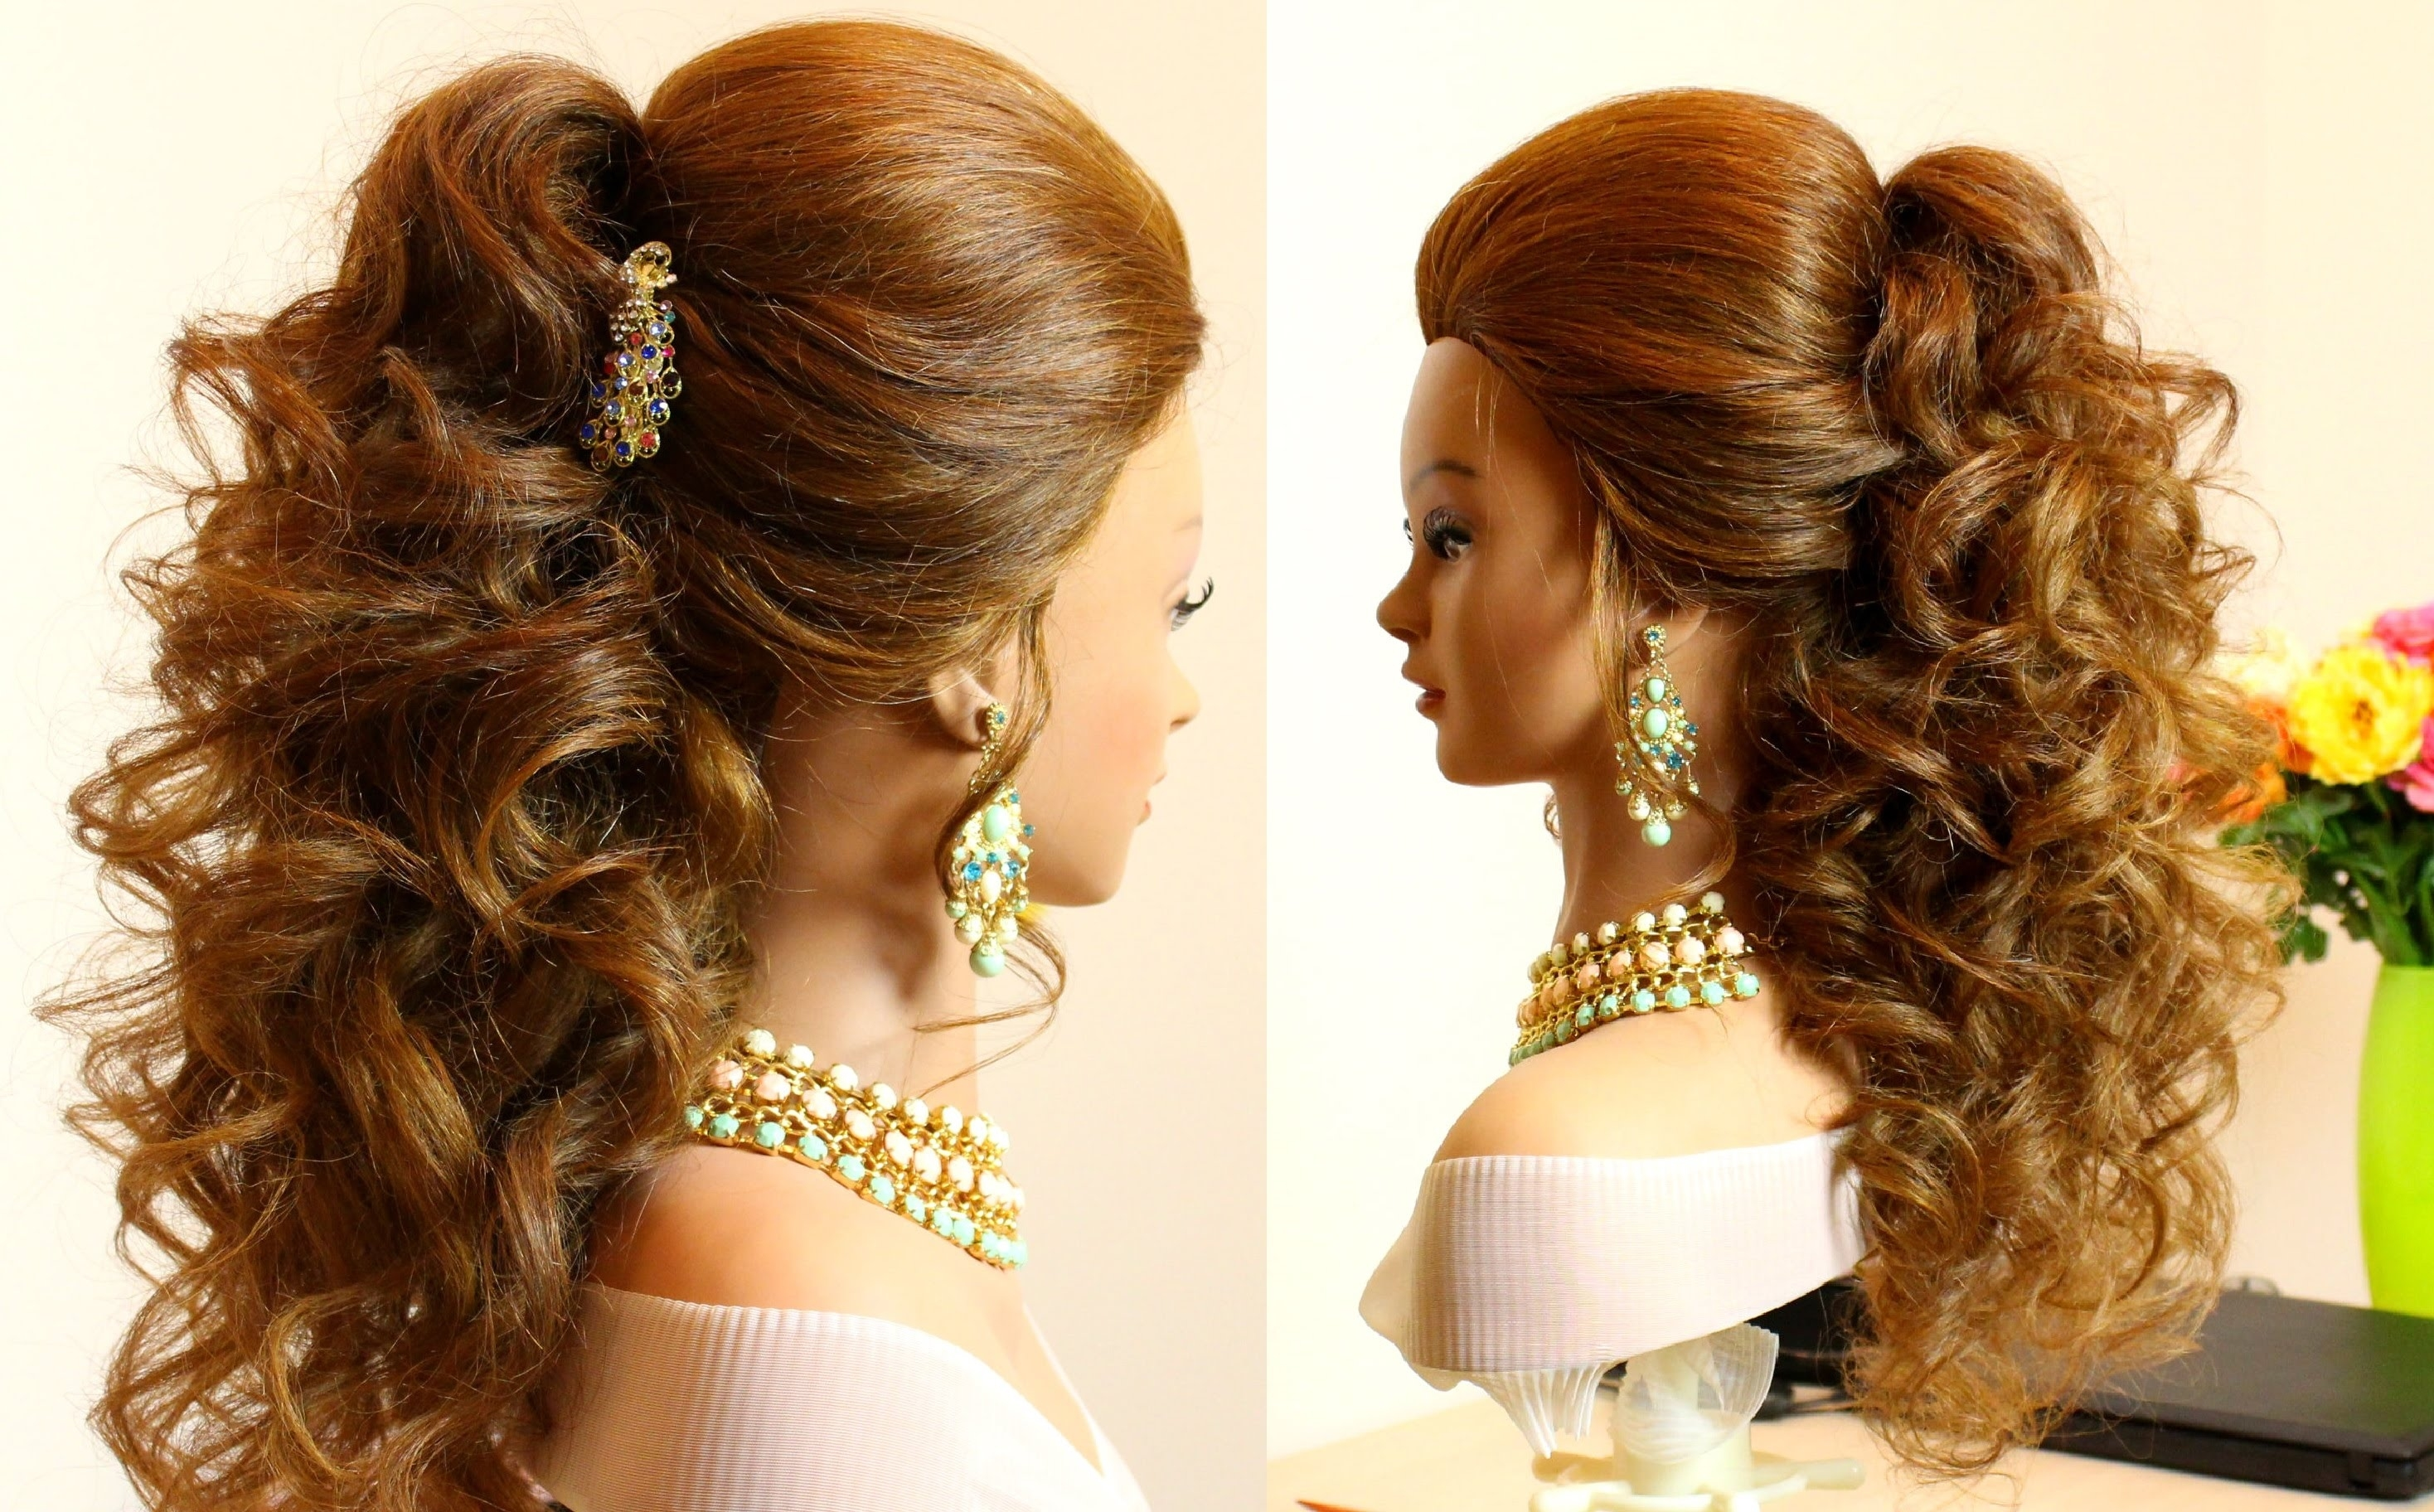 Hairstyles : Hairstyles Makeup Videos In Addition Pin Up intended for Curly Pin Up Hairstyles